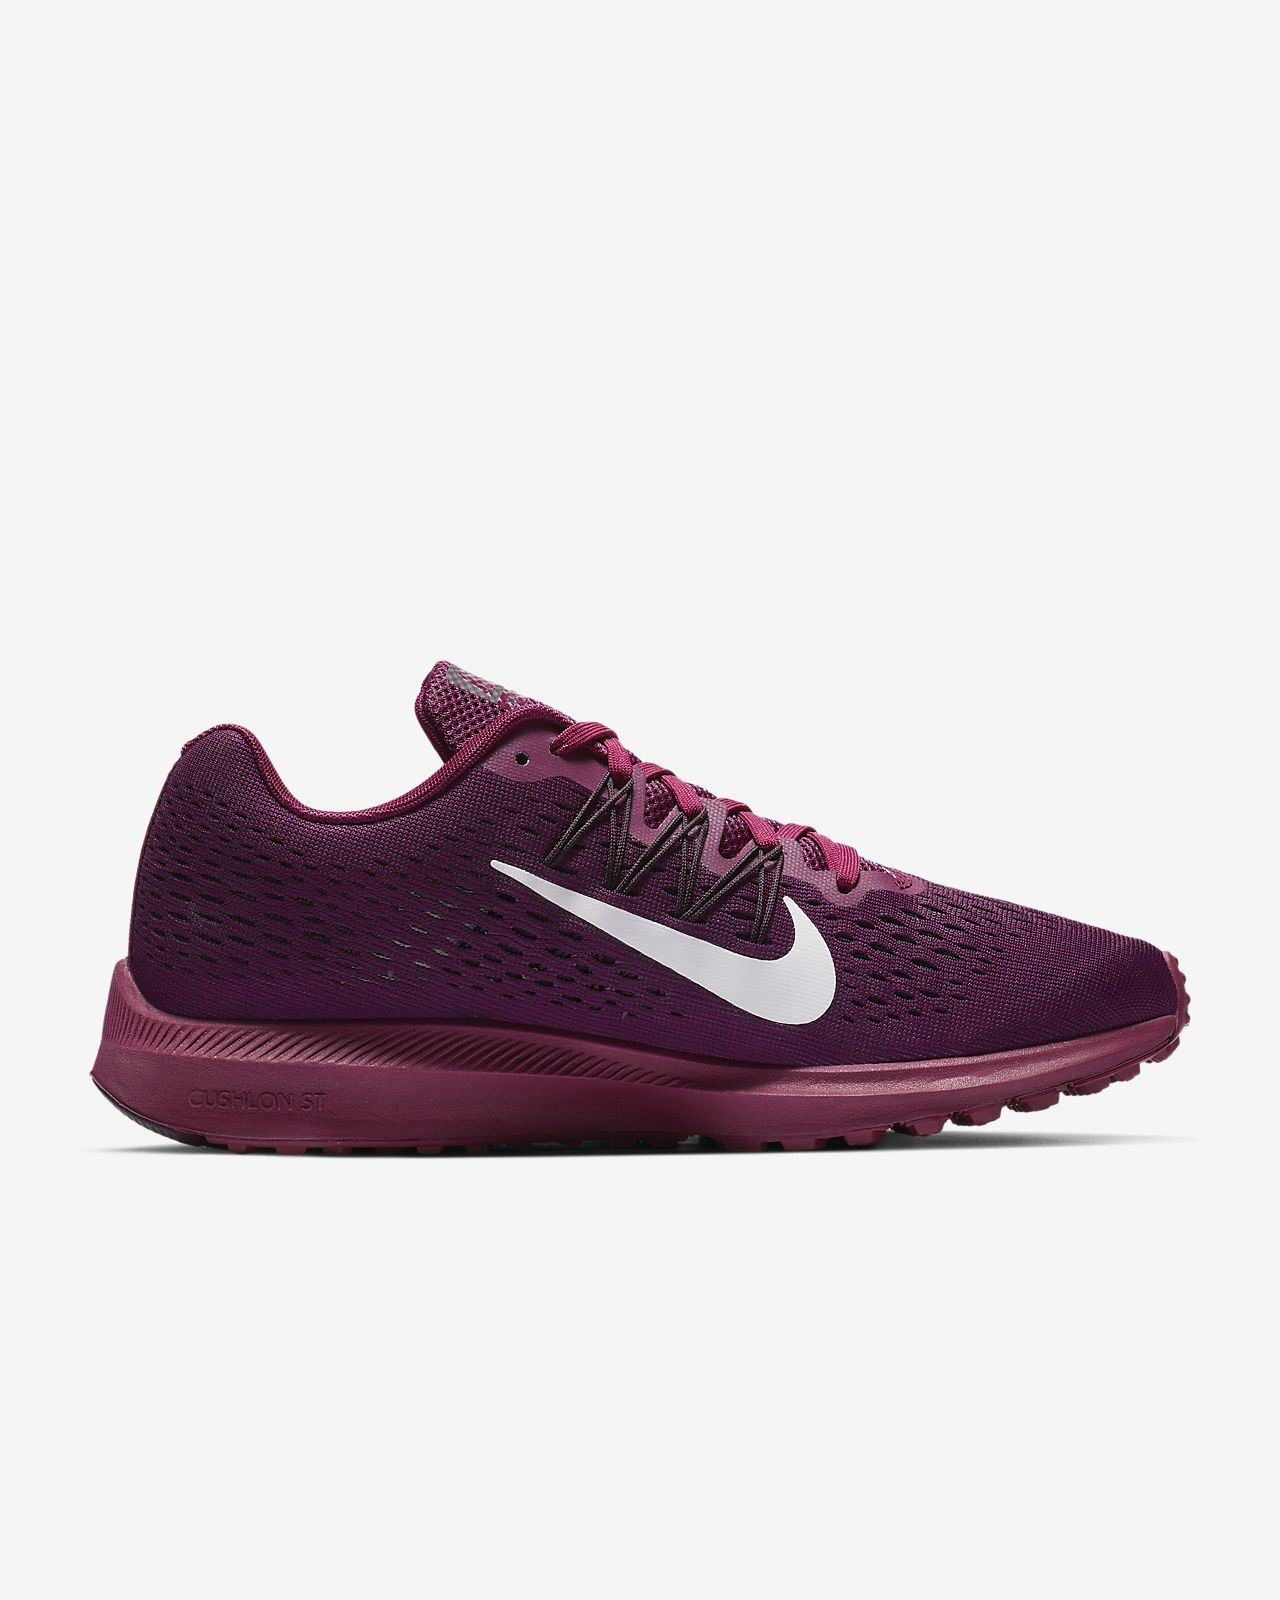 eec2982df11 Nike Air Zoom Winflo 5 Women s Running Shoe. Nike.com